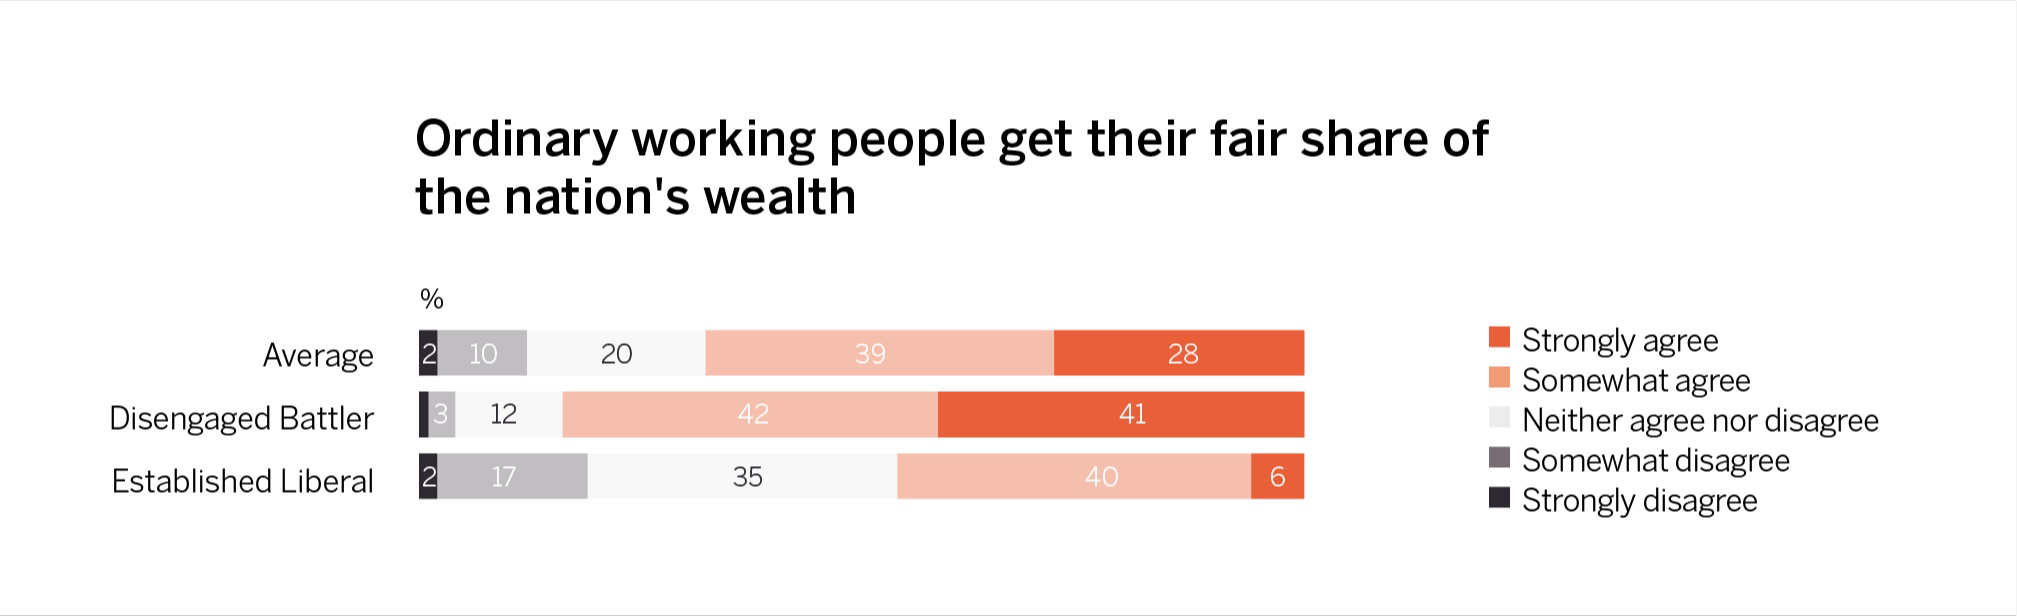 Views on wealth inequality: Disengaged Battlers and Established Liberals